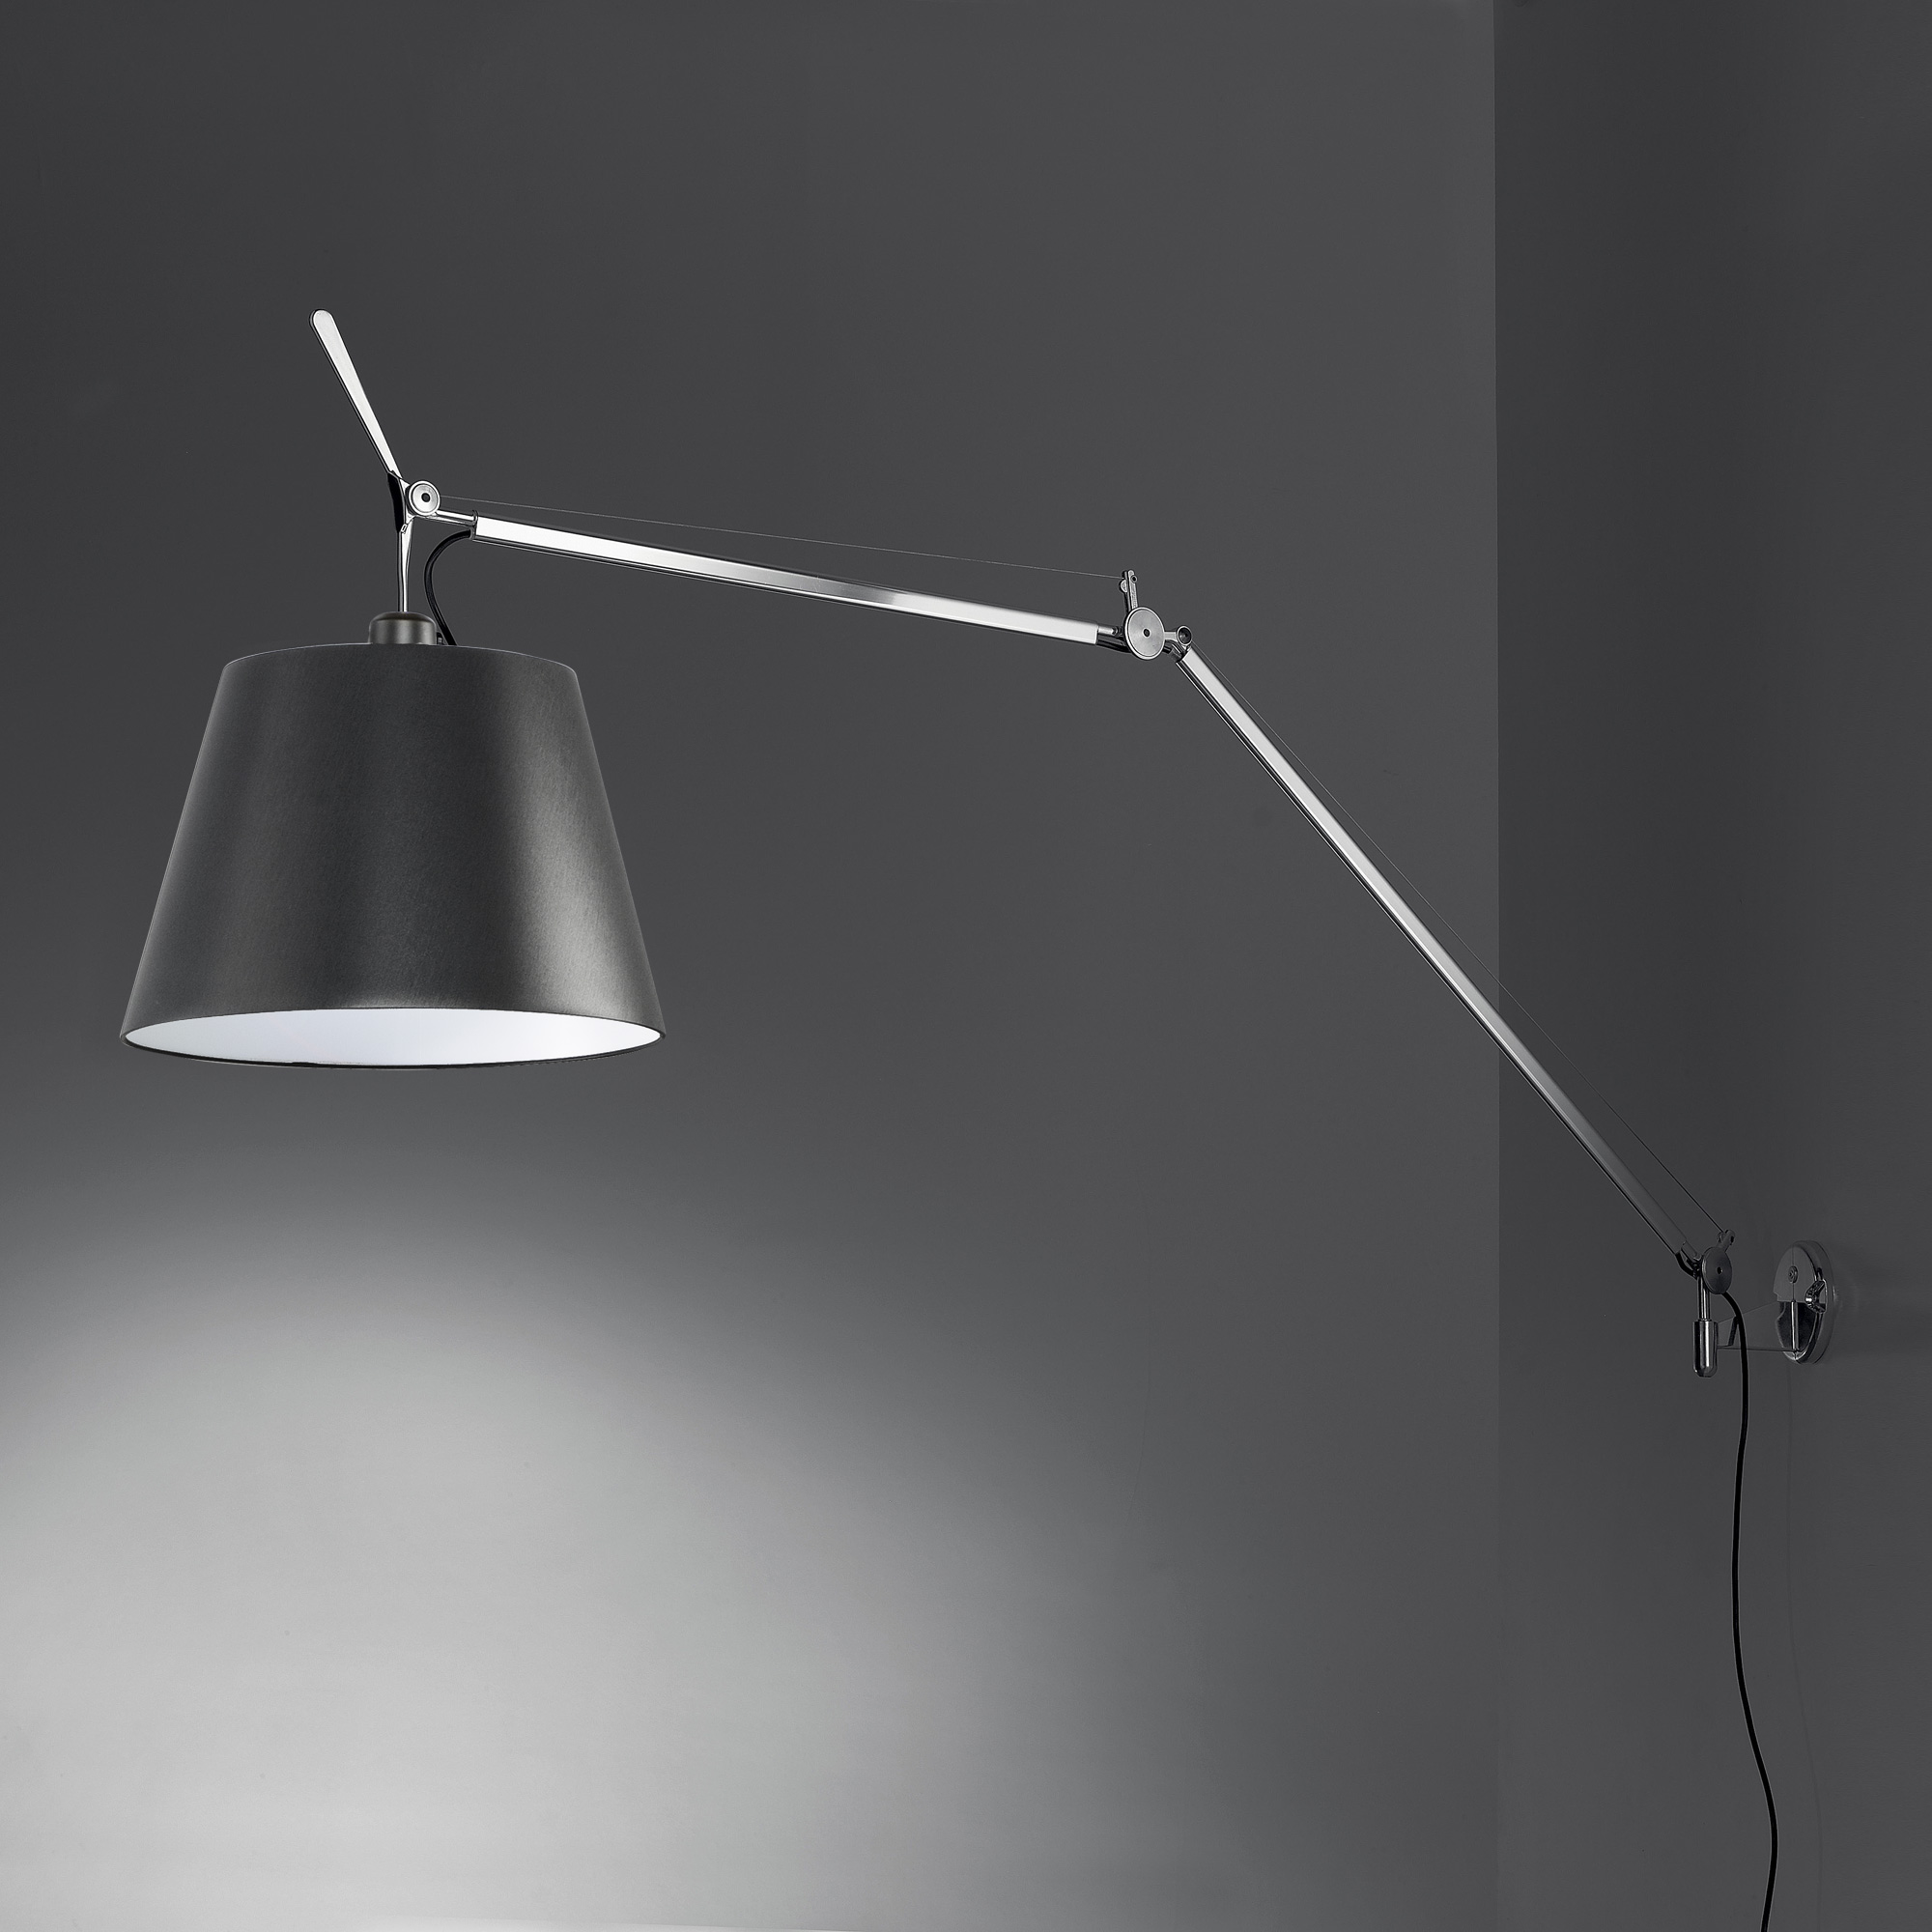 artemide tolomeo mega wandleuchte mit dimmer. Black Bedroom Furniture Sets. Home Design Ideas